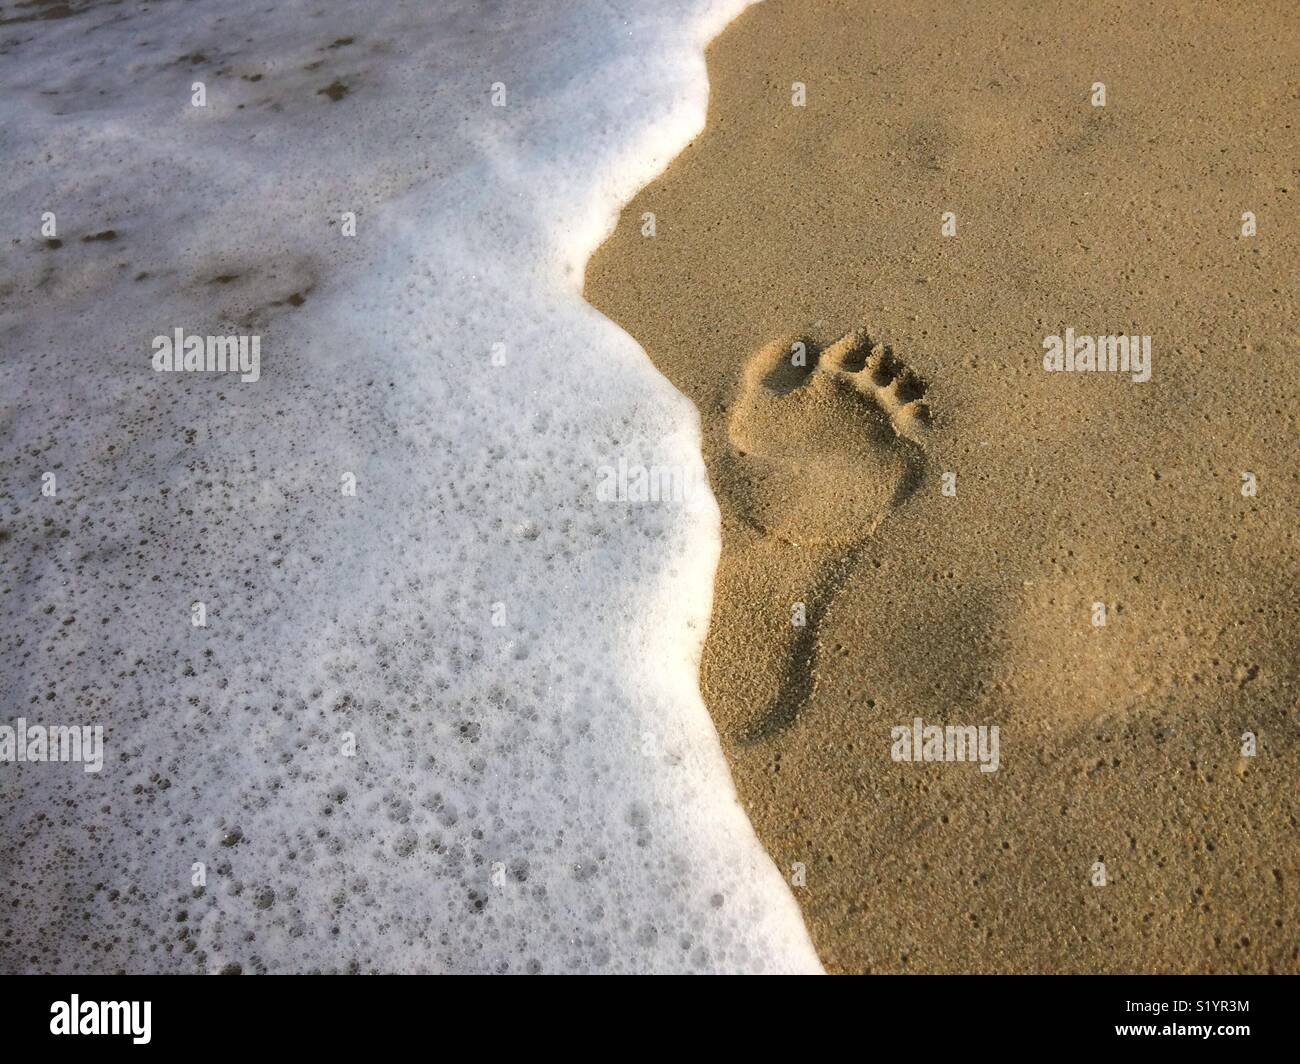 Footprint and waves on a sandy beach - Stock Image